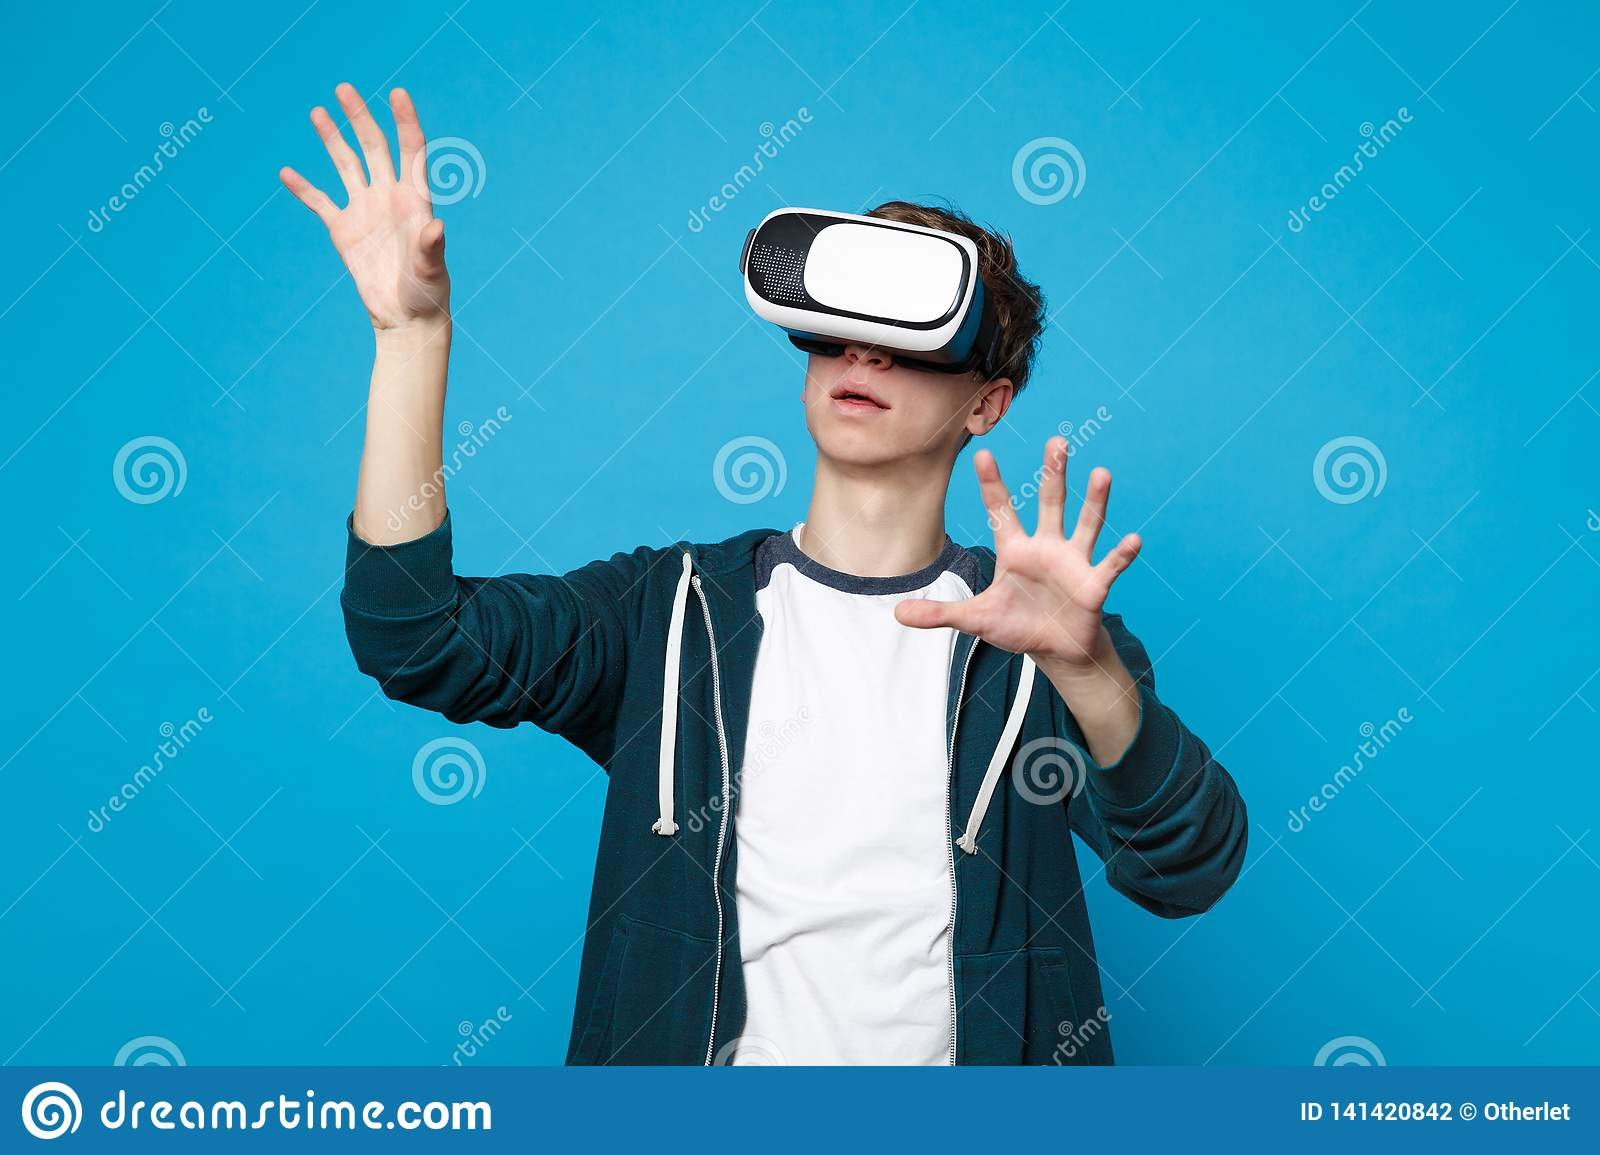 Young man looking on headset touch something like push click on button, pointing at floating virtual screen isolated on